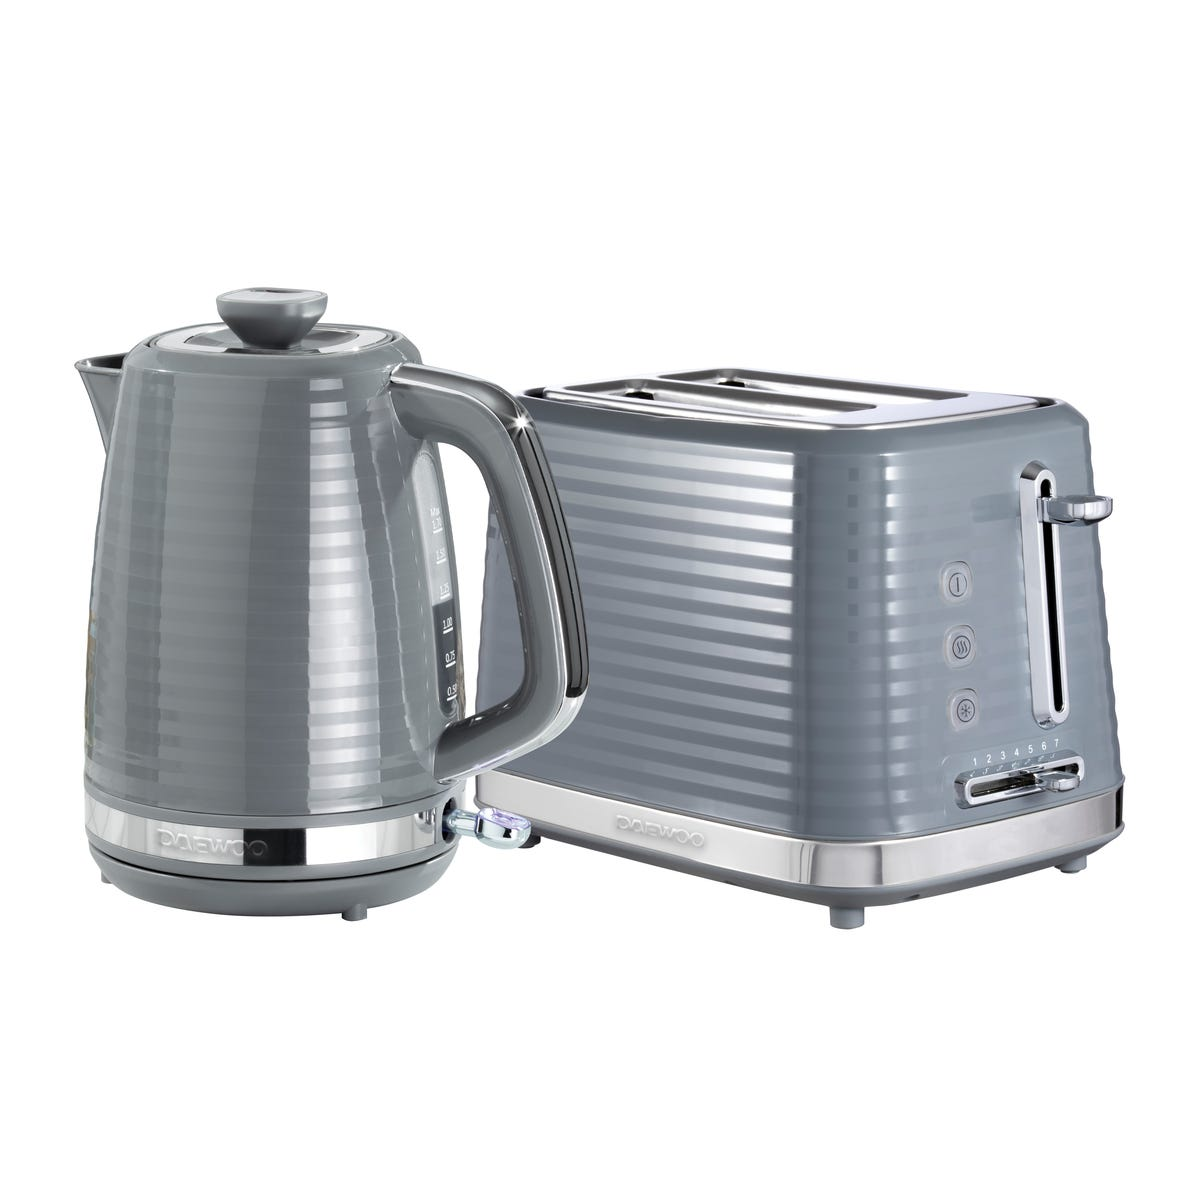 Daewoo SDA2371DS Hive 1.7L 3KW Textured Kettle and 2 Slice Toaster Set - Grey